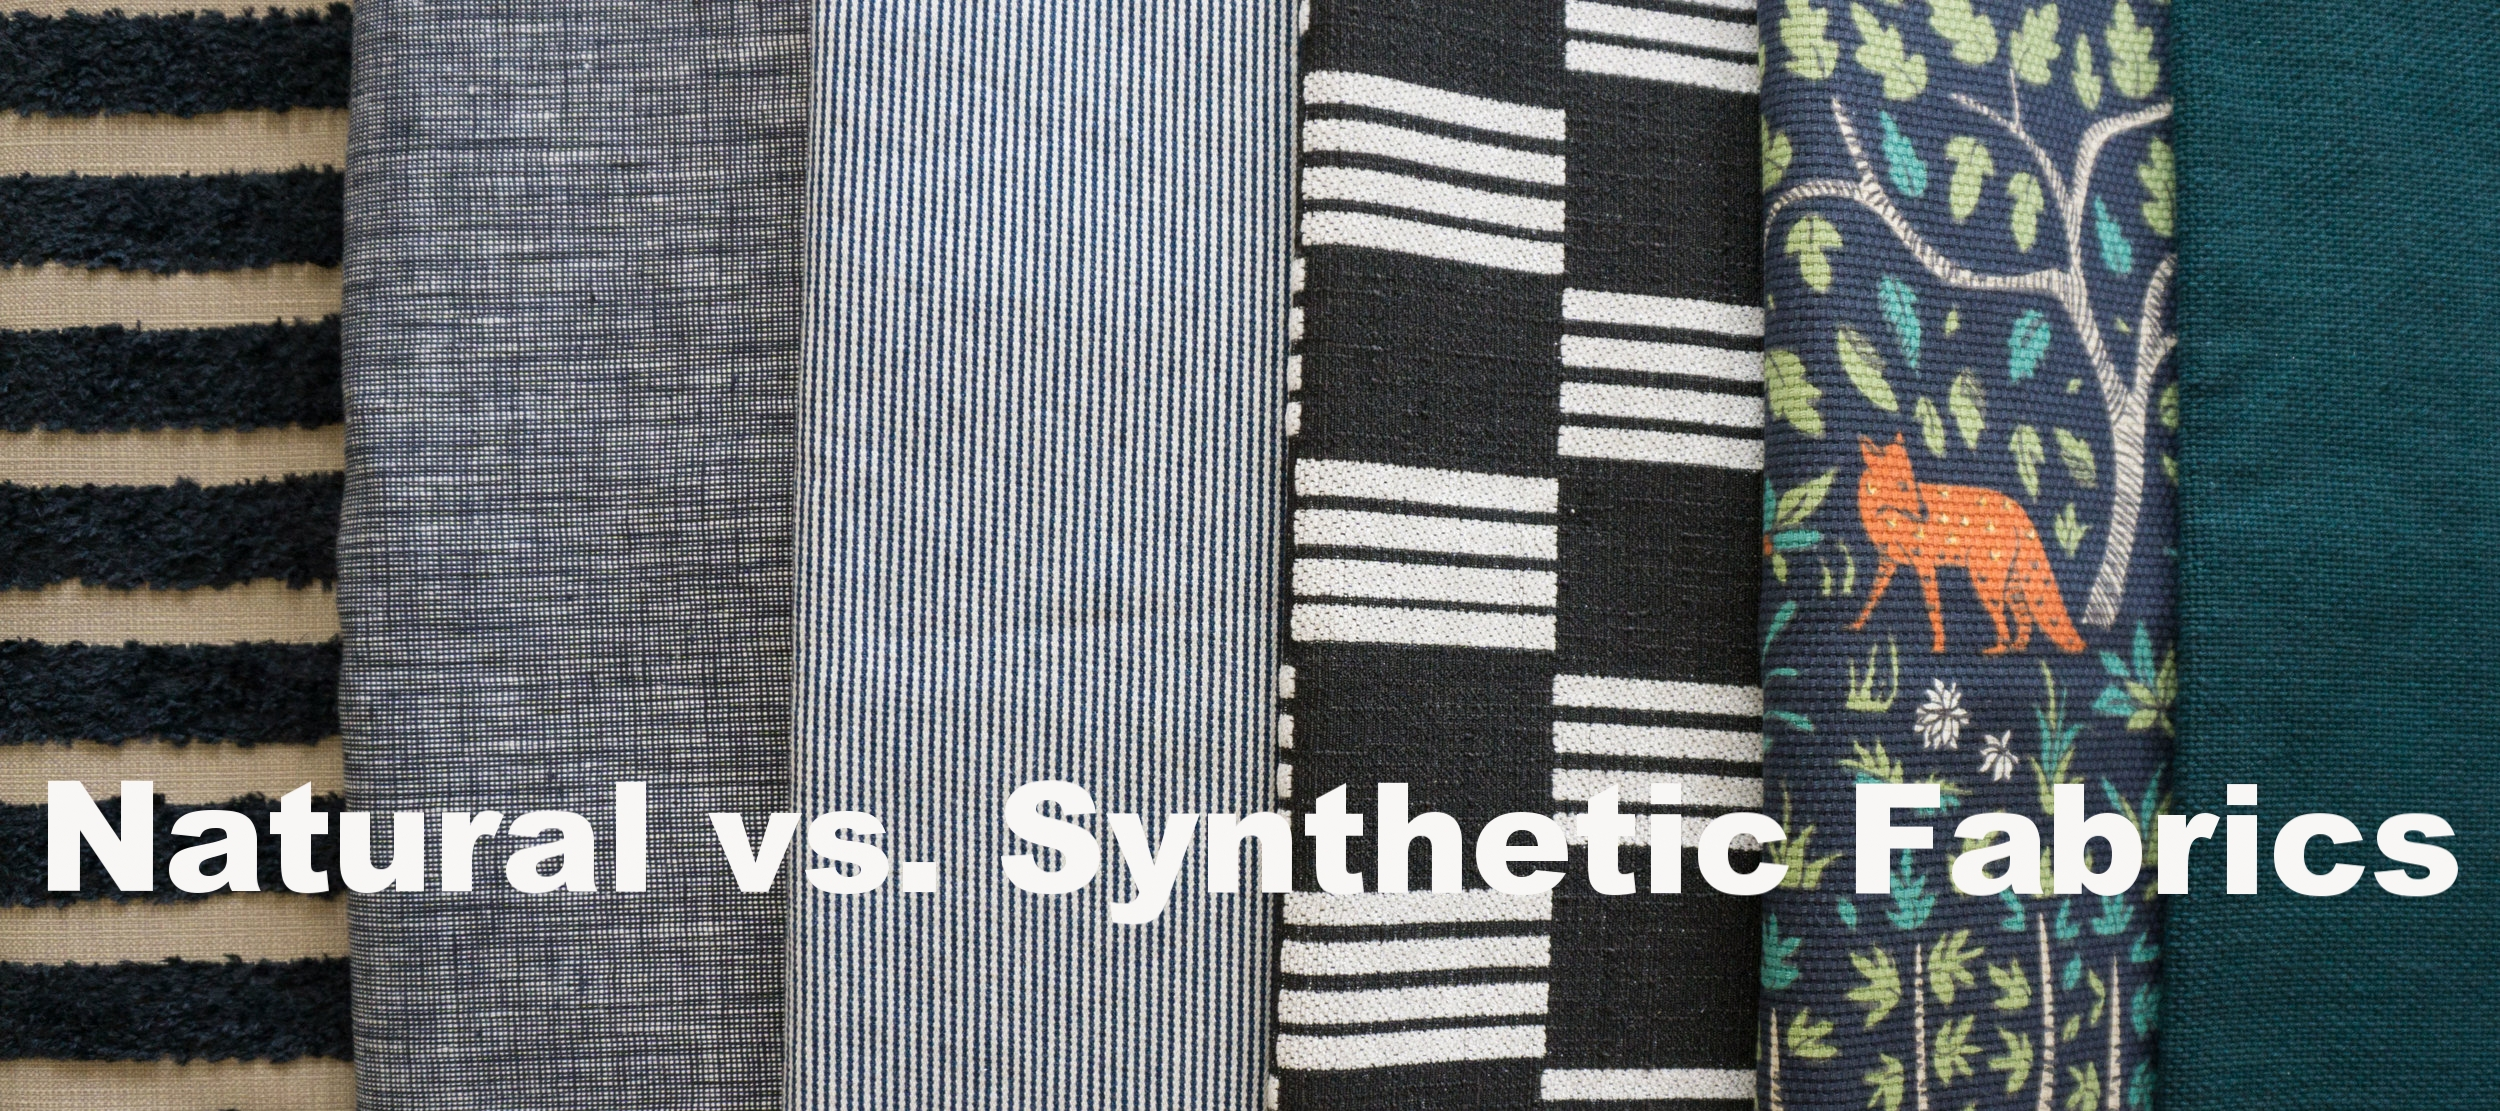 CLICK THROUGH BLOG: Figure out what type of fabric you need and how it impacts the environment.